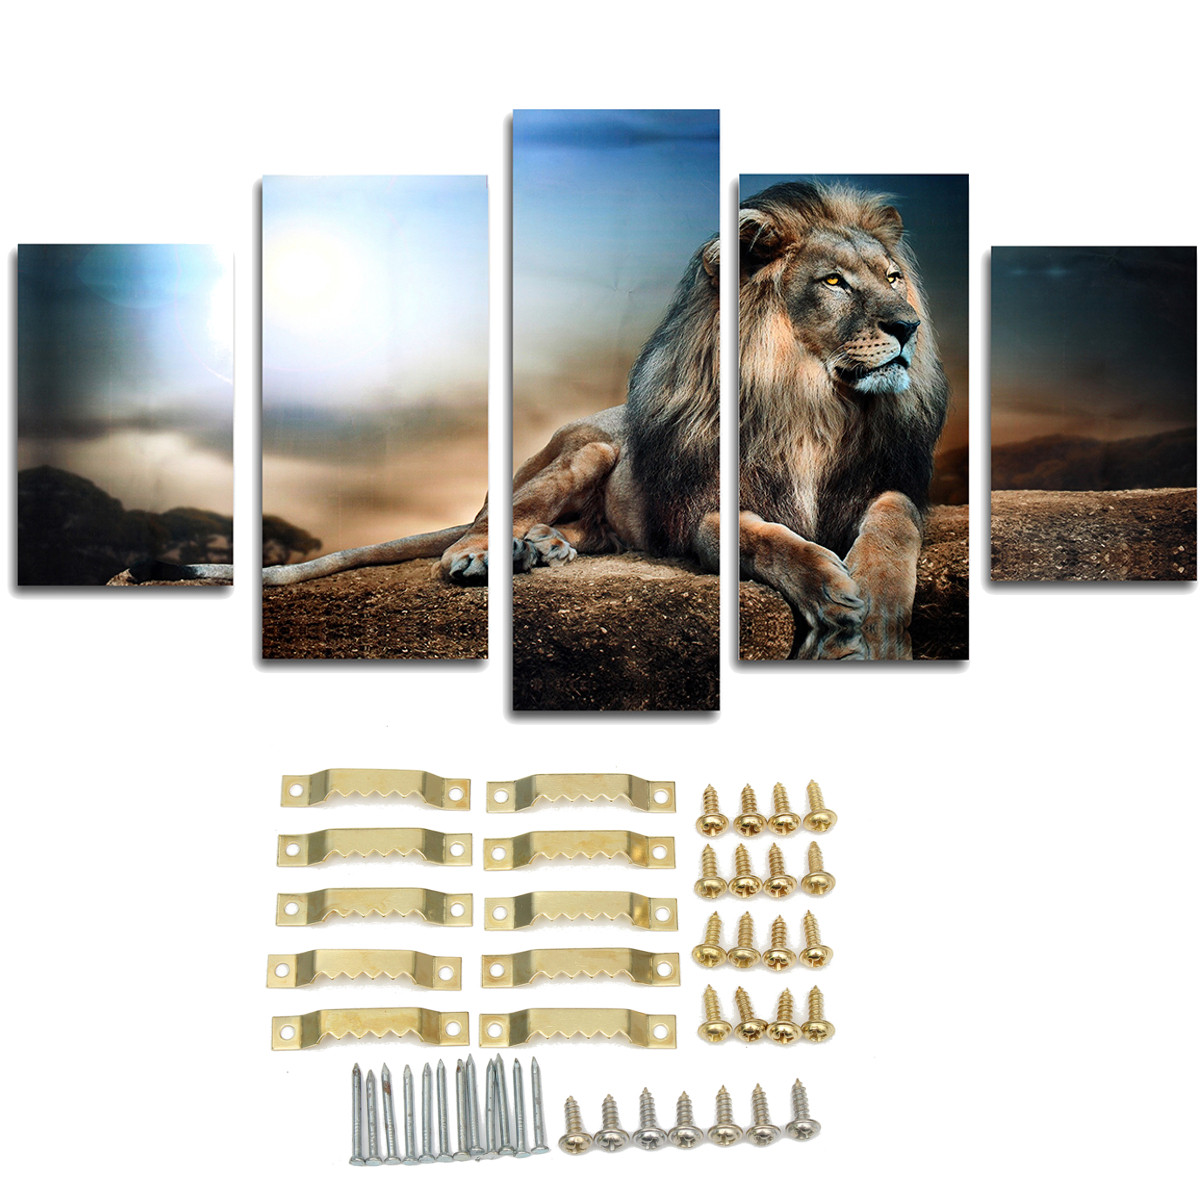 Unframed  Oil Painting Picture Canvas Prints 5 Panel Modern Abstract Home Wall Art Hanging Decor Gift